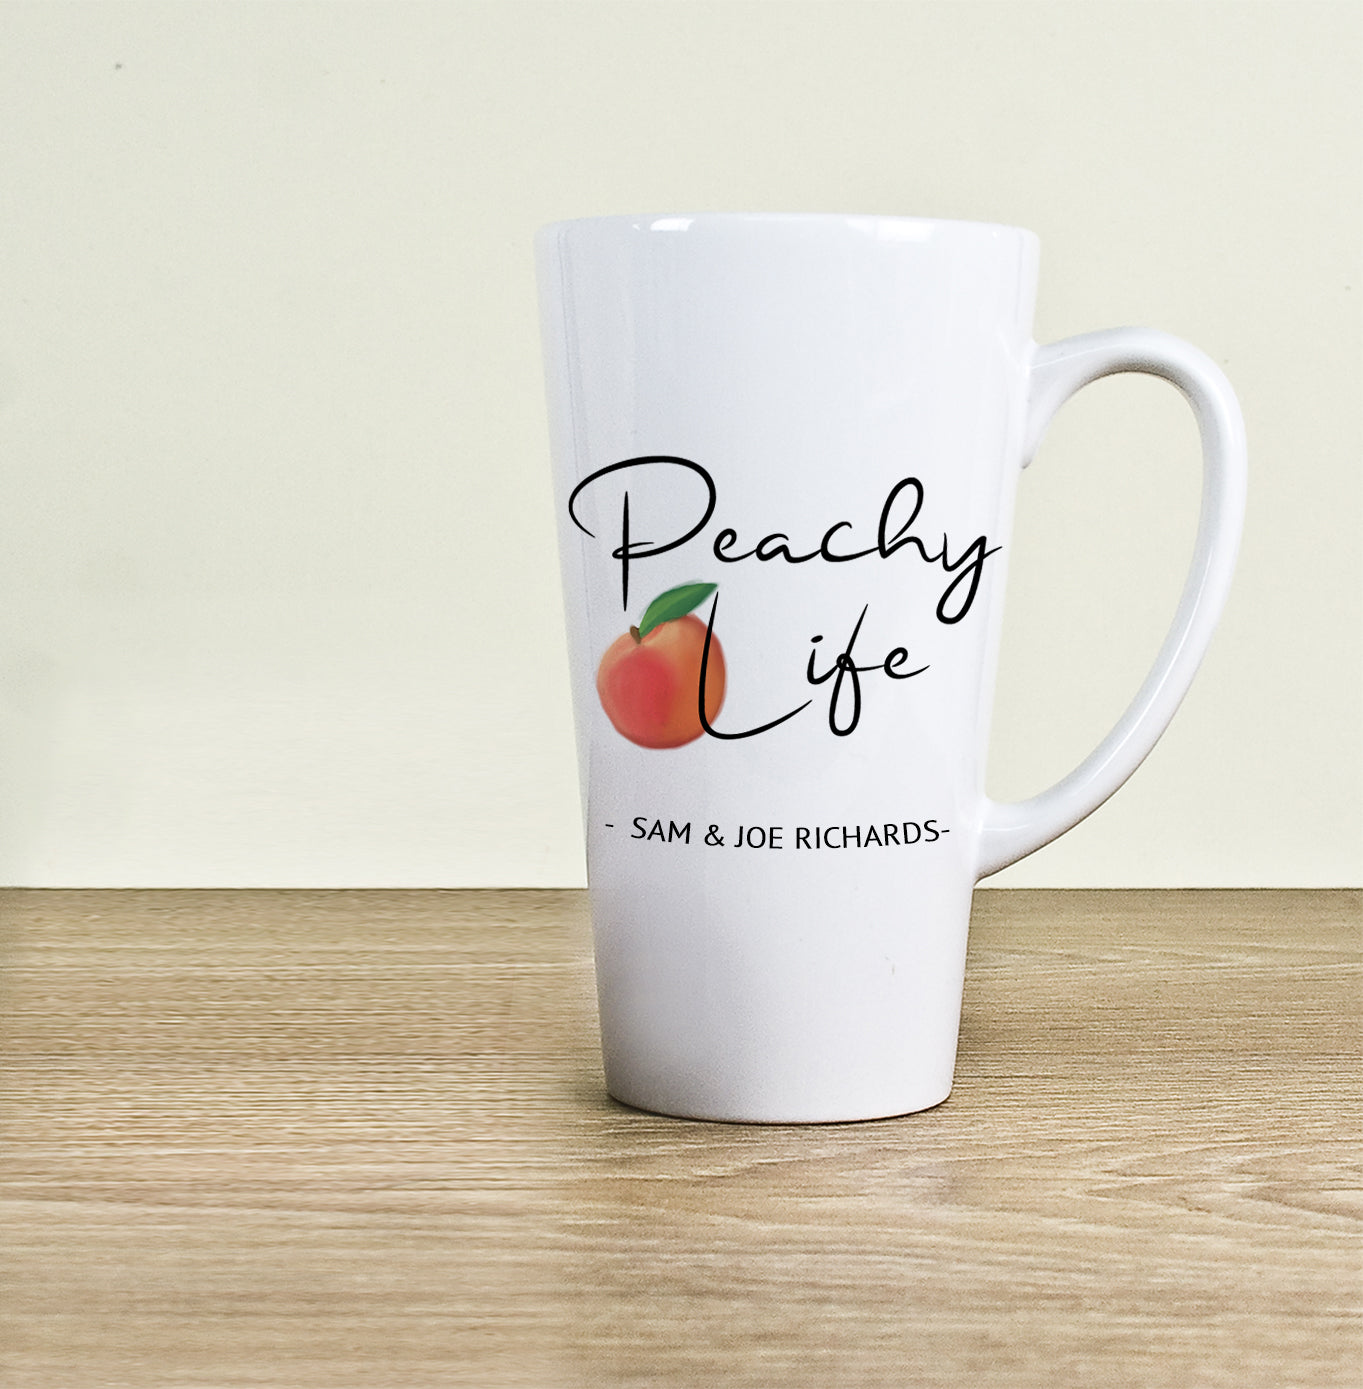 Peachy Life Latte Mug, Home & Garden by Low Cost Gifts